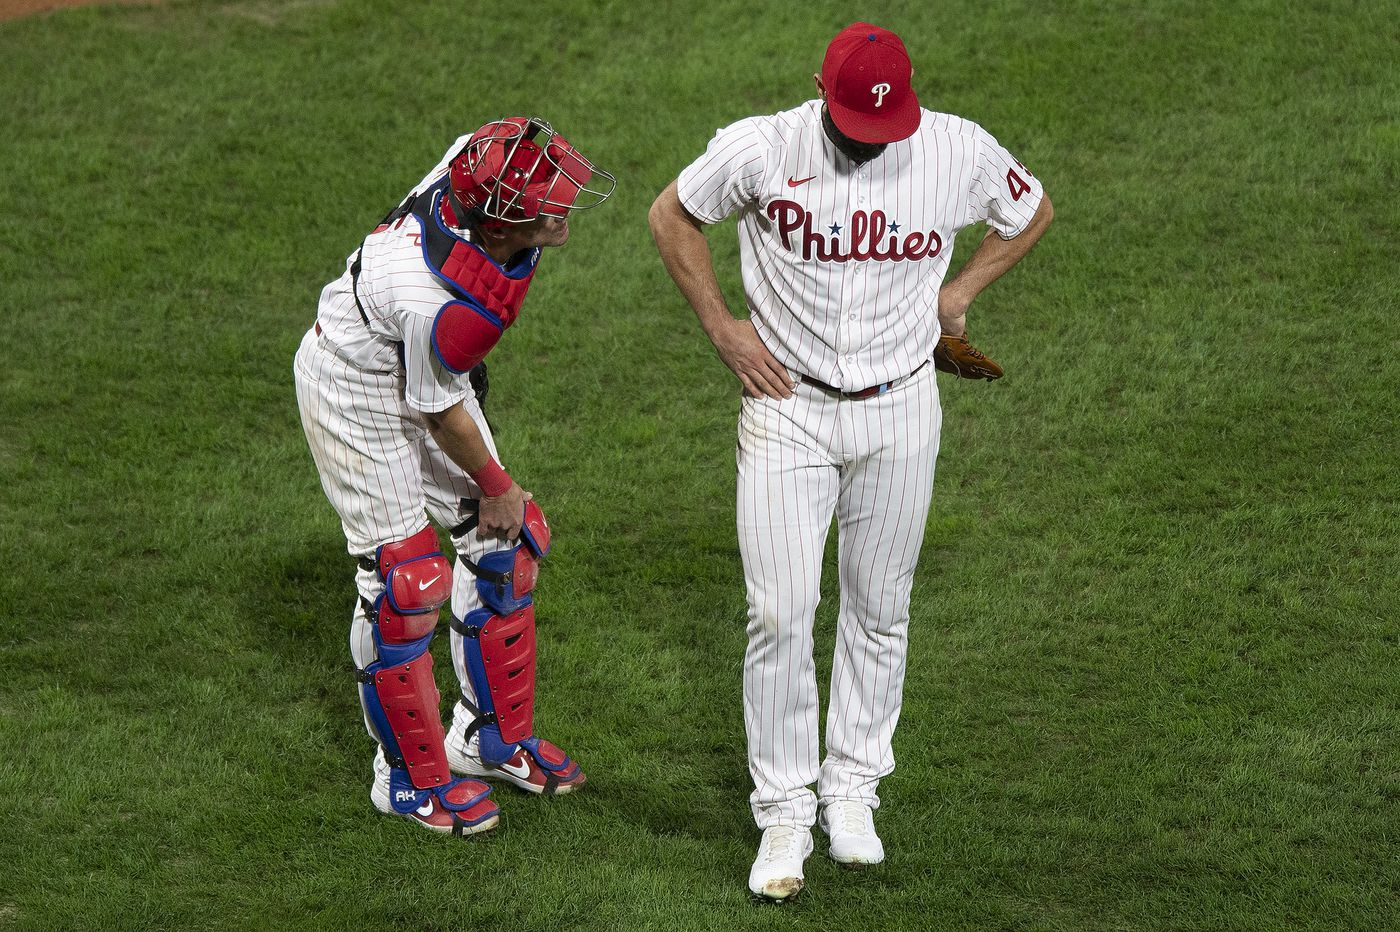 Phillies snap three-game losing streak with 4-1 win over Mets but lose Jake Arrieta to hamstring injury